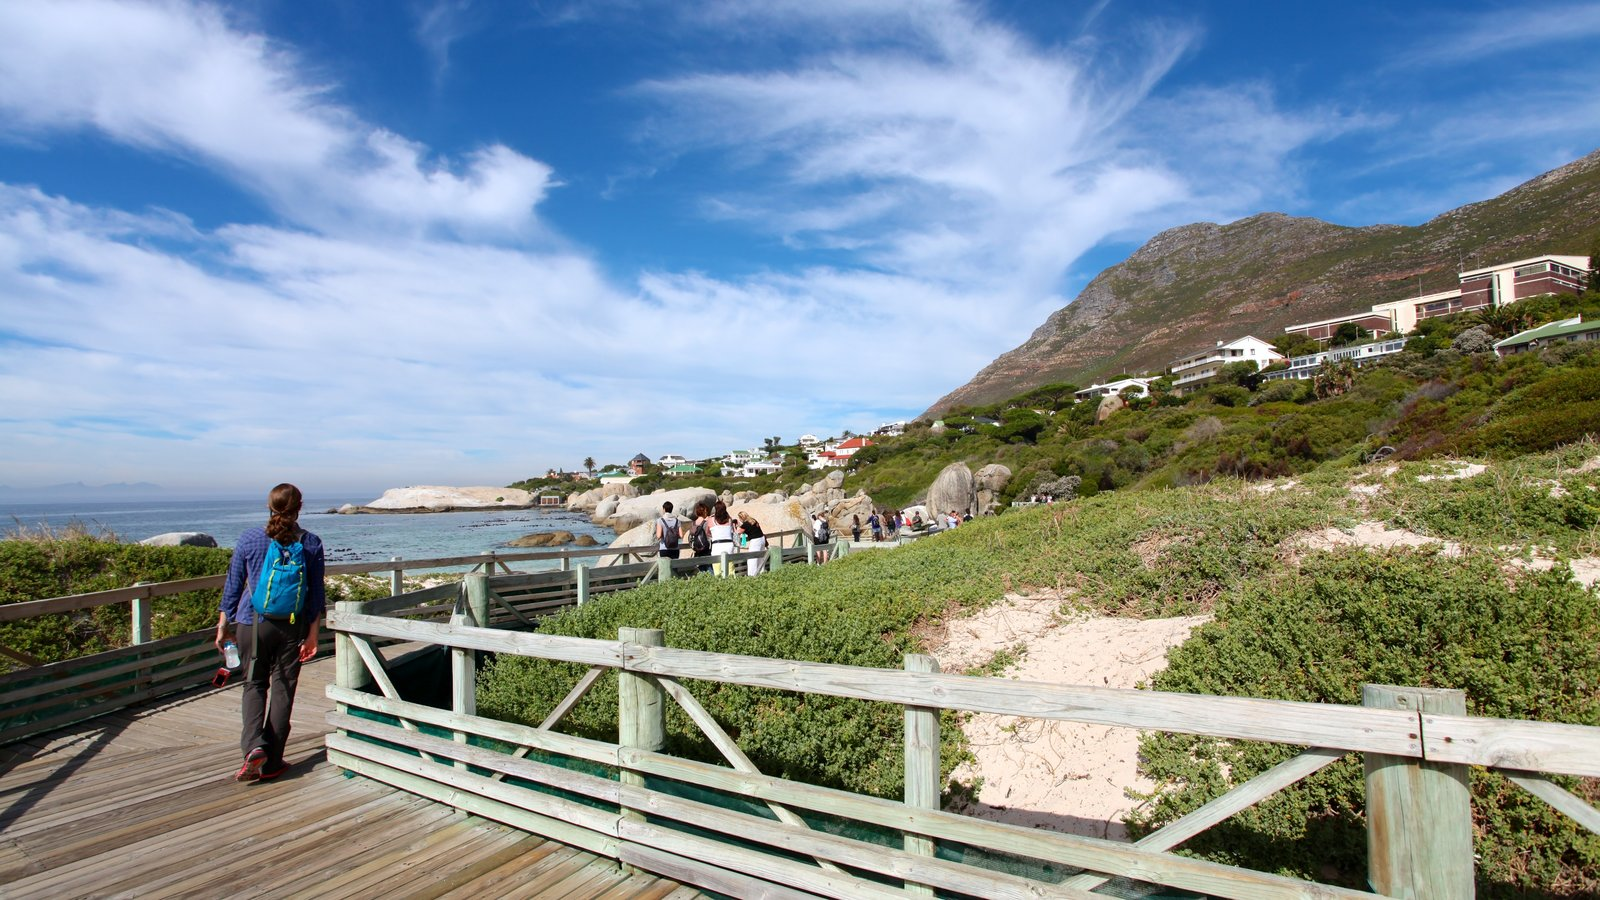 Boulders Beach which includes tropical scenes, hiking or walking and rocky coastline